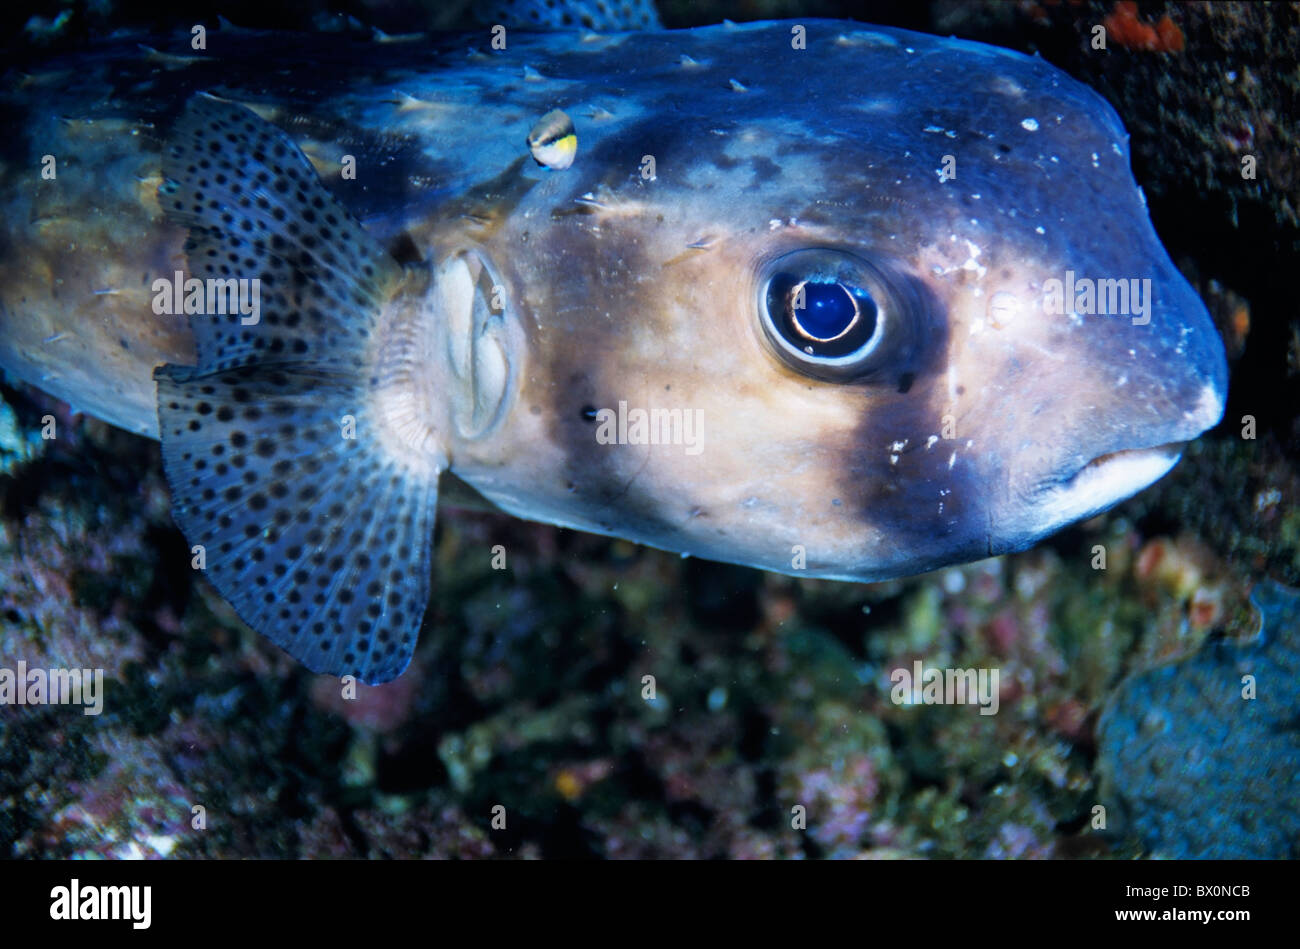 Freckled Porcupinefish (Diodon holocanthus), Le Sournois Reef, Noumea Lagoon, New Caledonia. - Stock Image